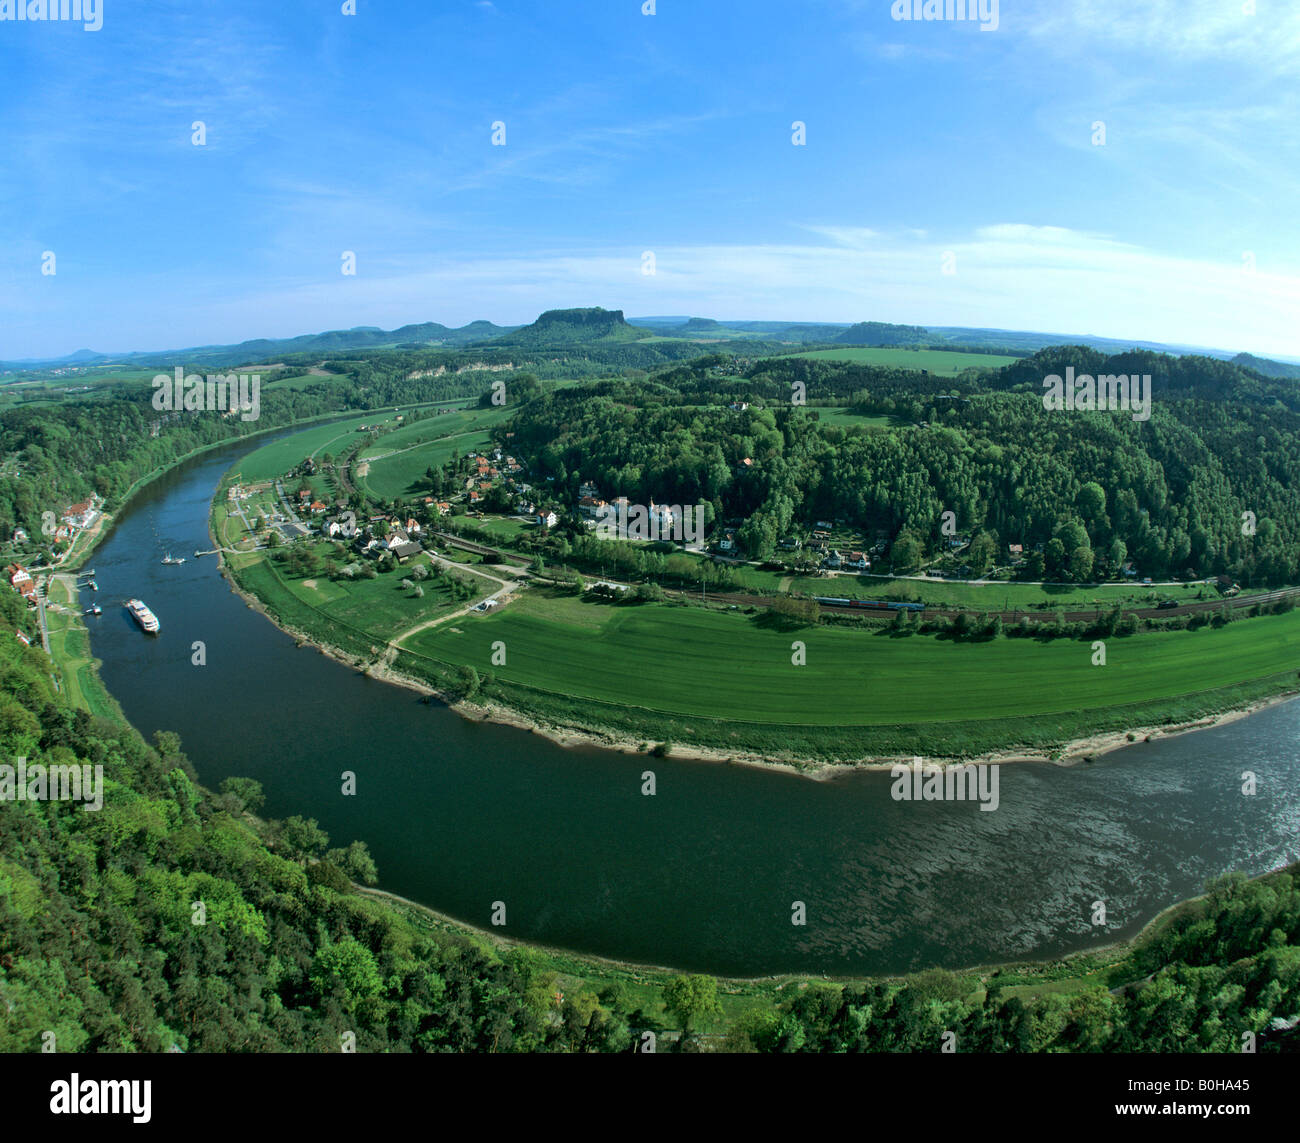 Montagnes de Grès de l'Elbe, le bastion, vue de Rathen, district de Oberrathen, Elbe, la Suisse Saxonne, Photo Stock